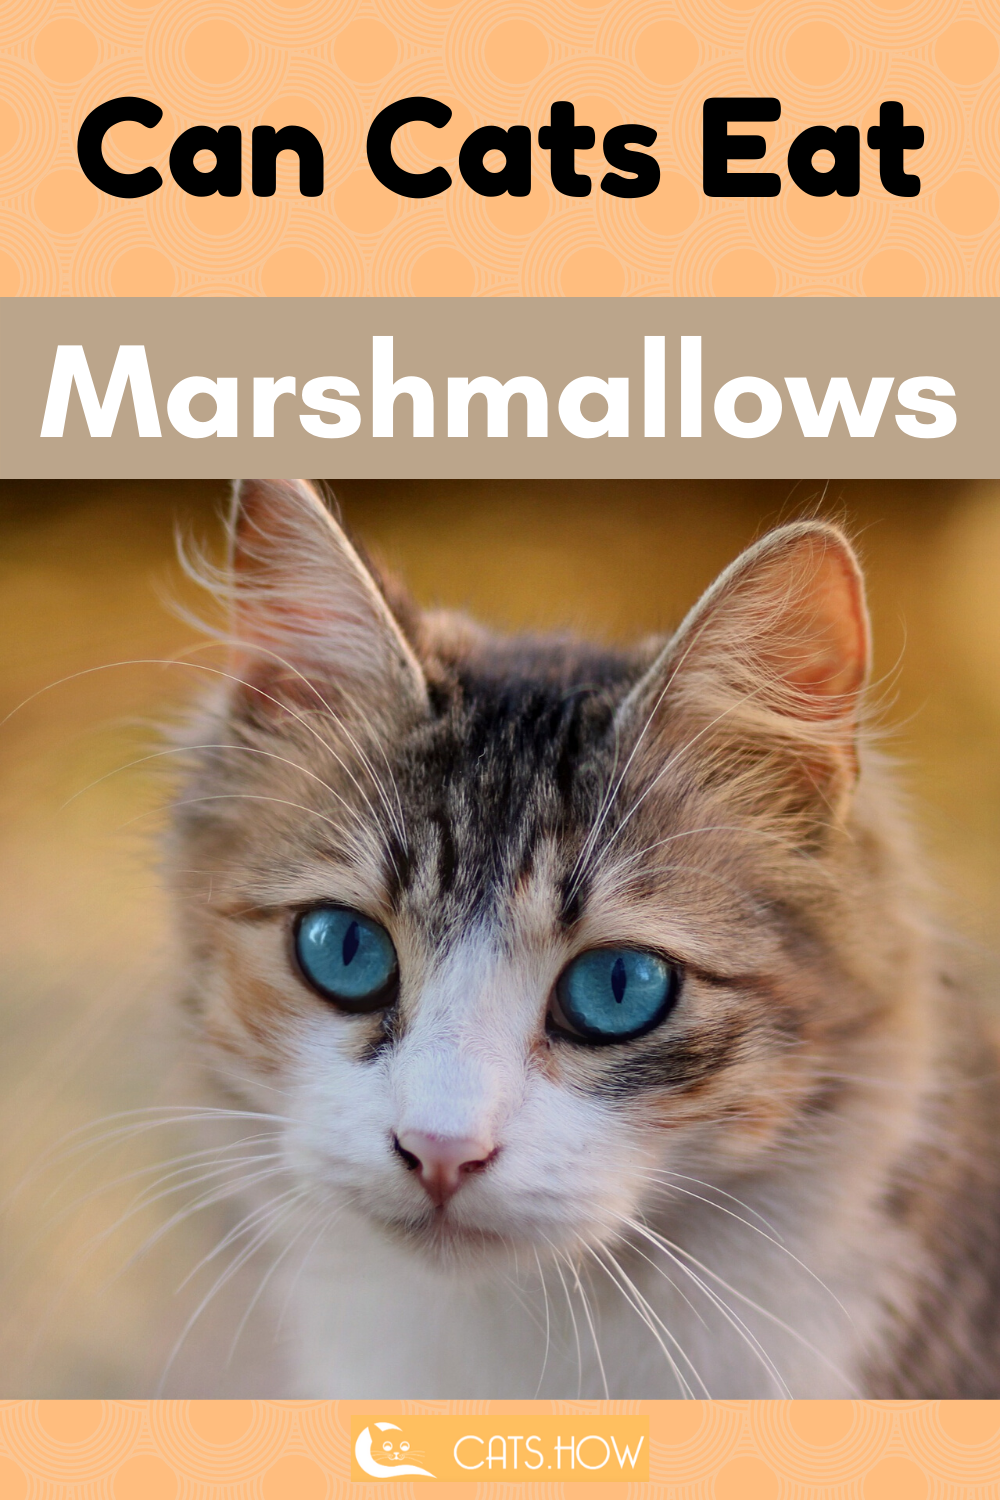 ᐉ Can Cats Eat Marshmallows in 2020 (With images) Cat